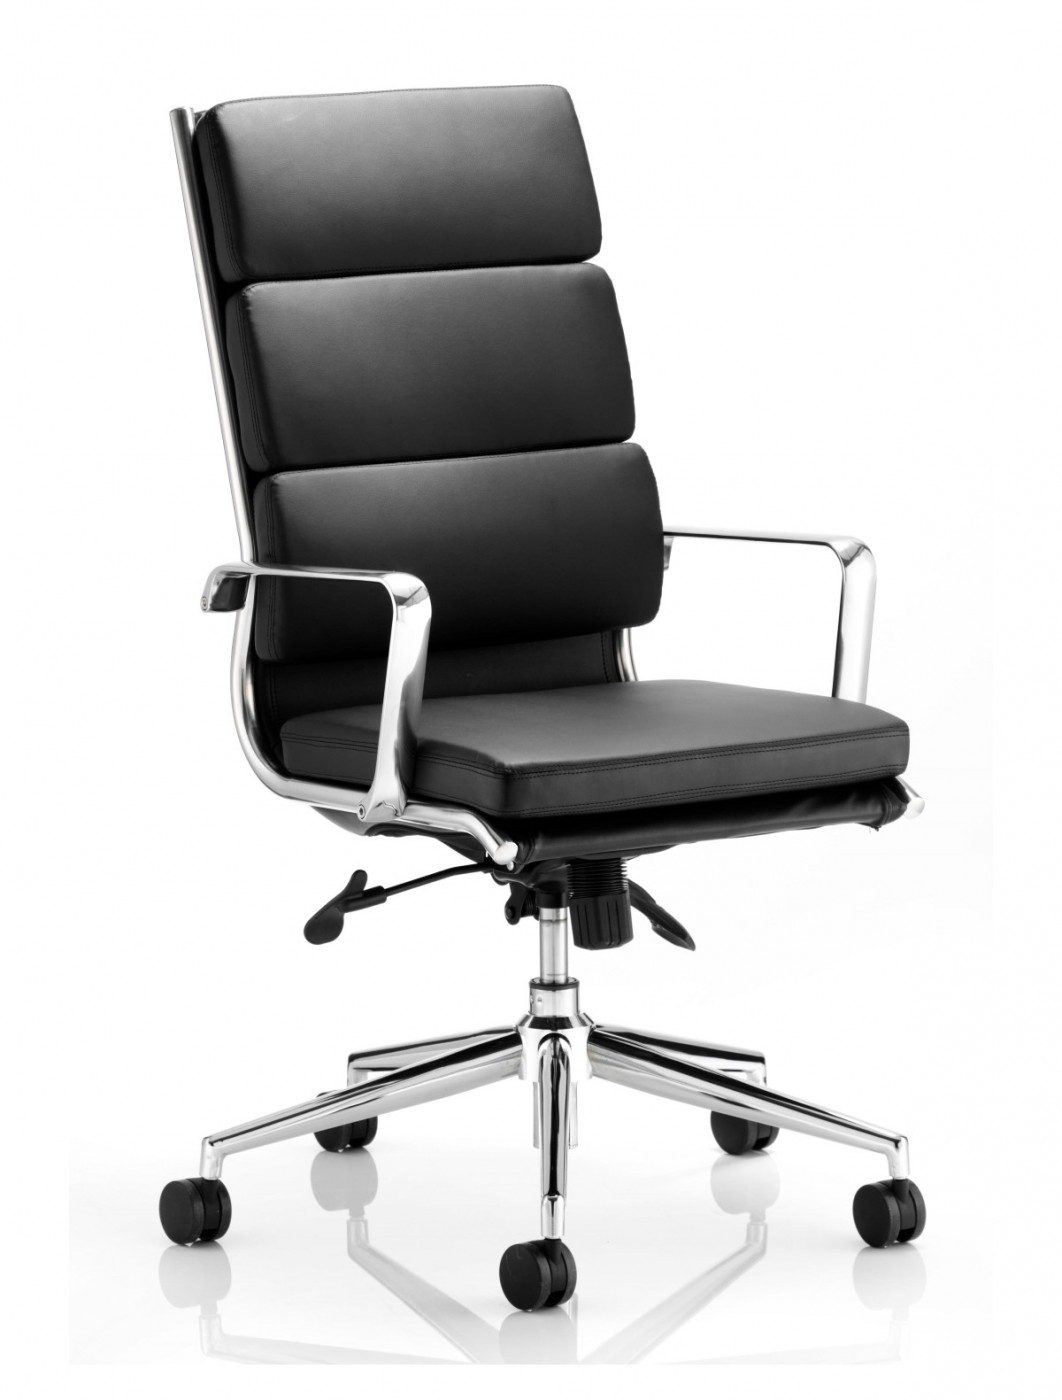 Picture of: Dynamic Savoy High Back Executive Chair Black Ex000067 121 Office Furniture